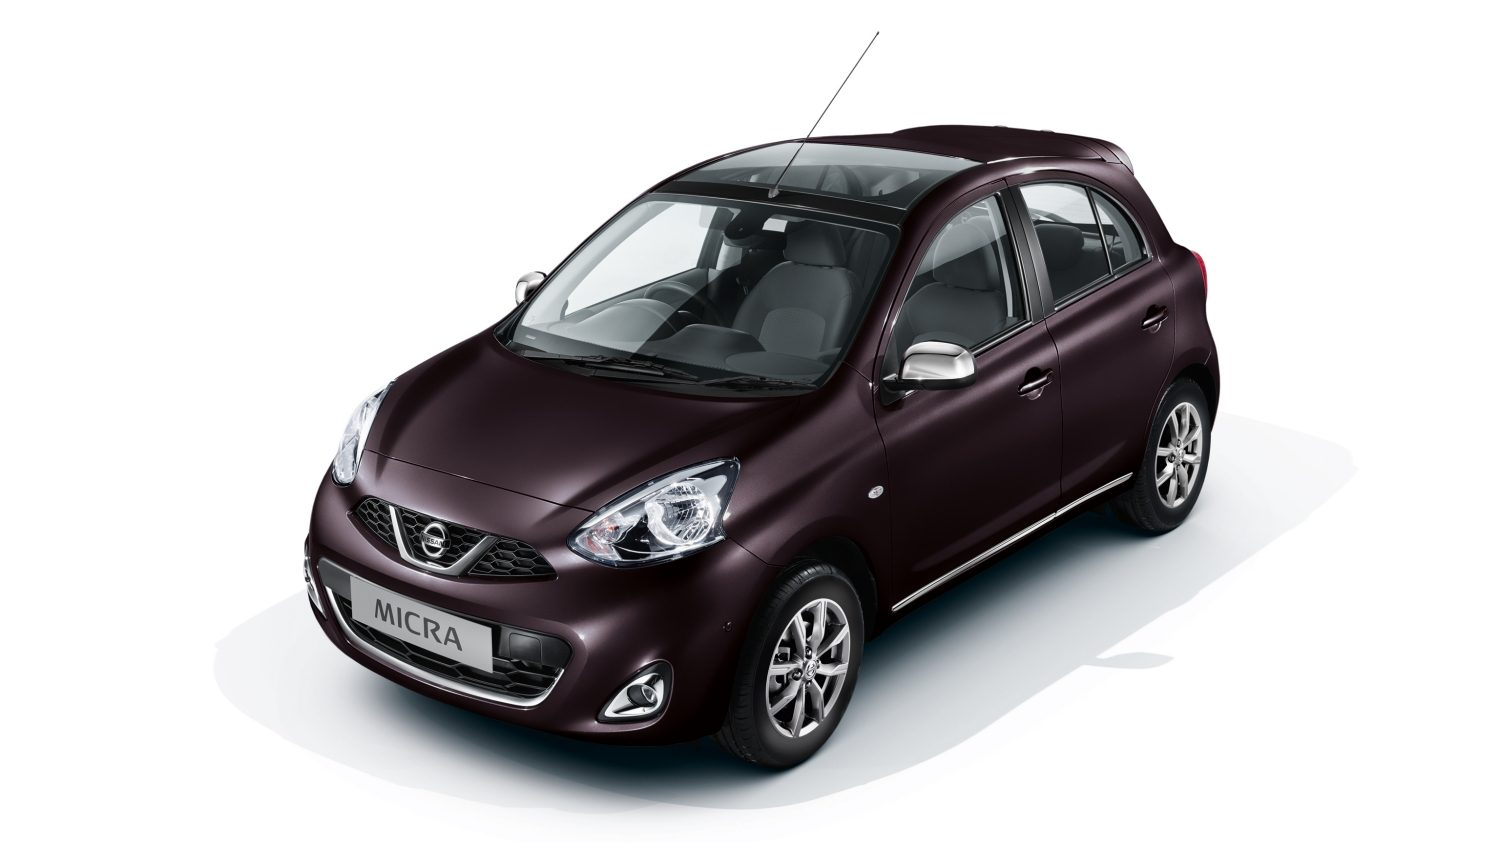 Nissan Micra | City car exterior